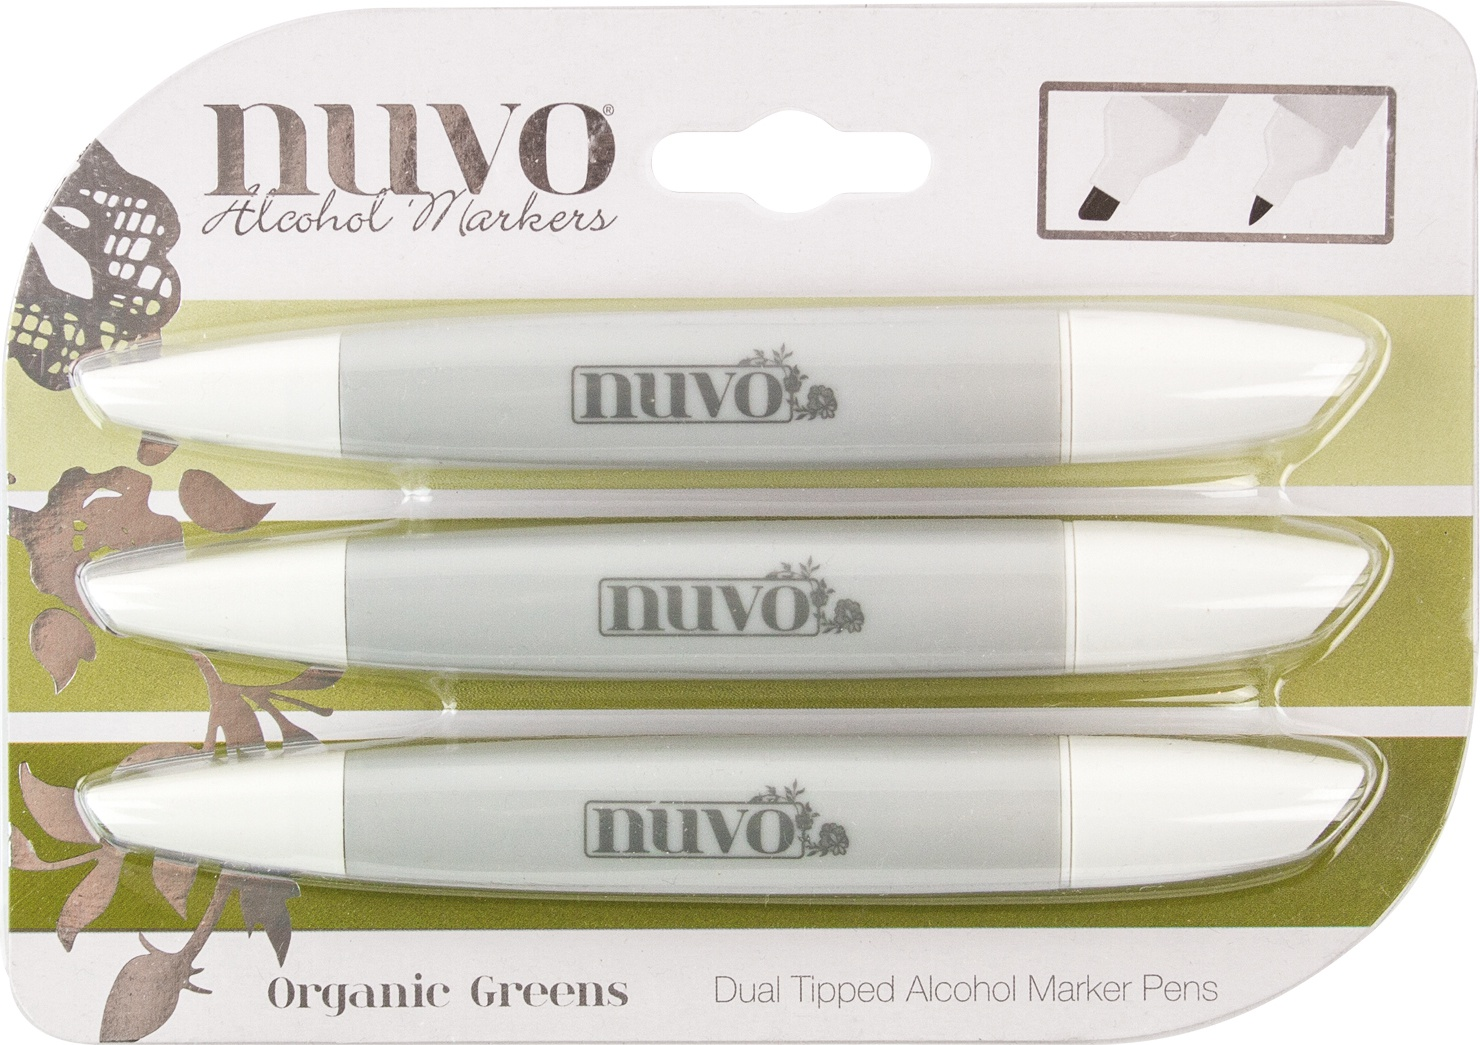 Nuvo Organic Greens Alcohol Mar